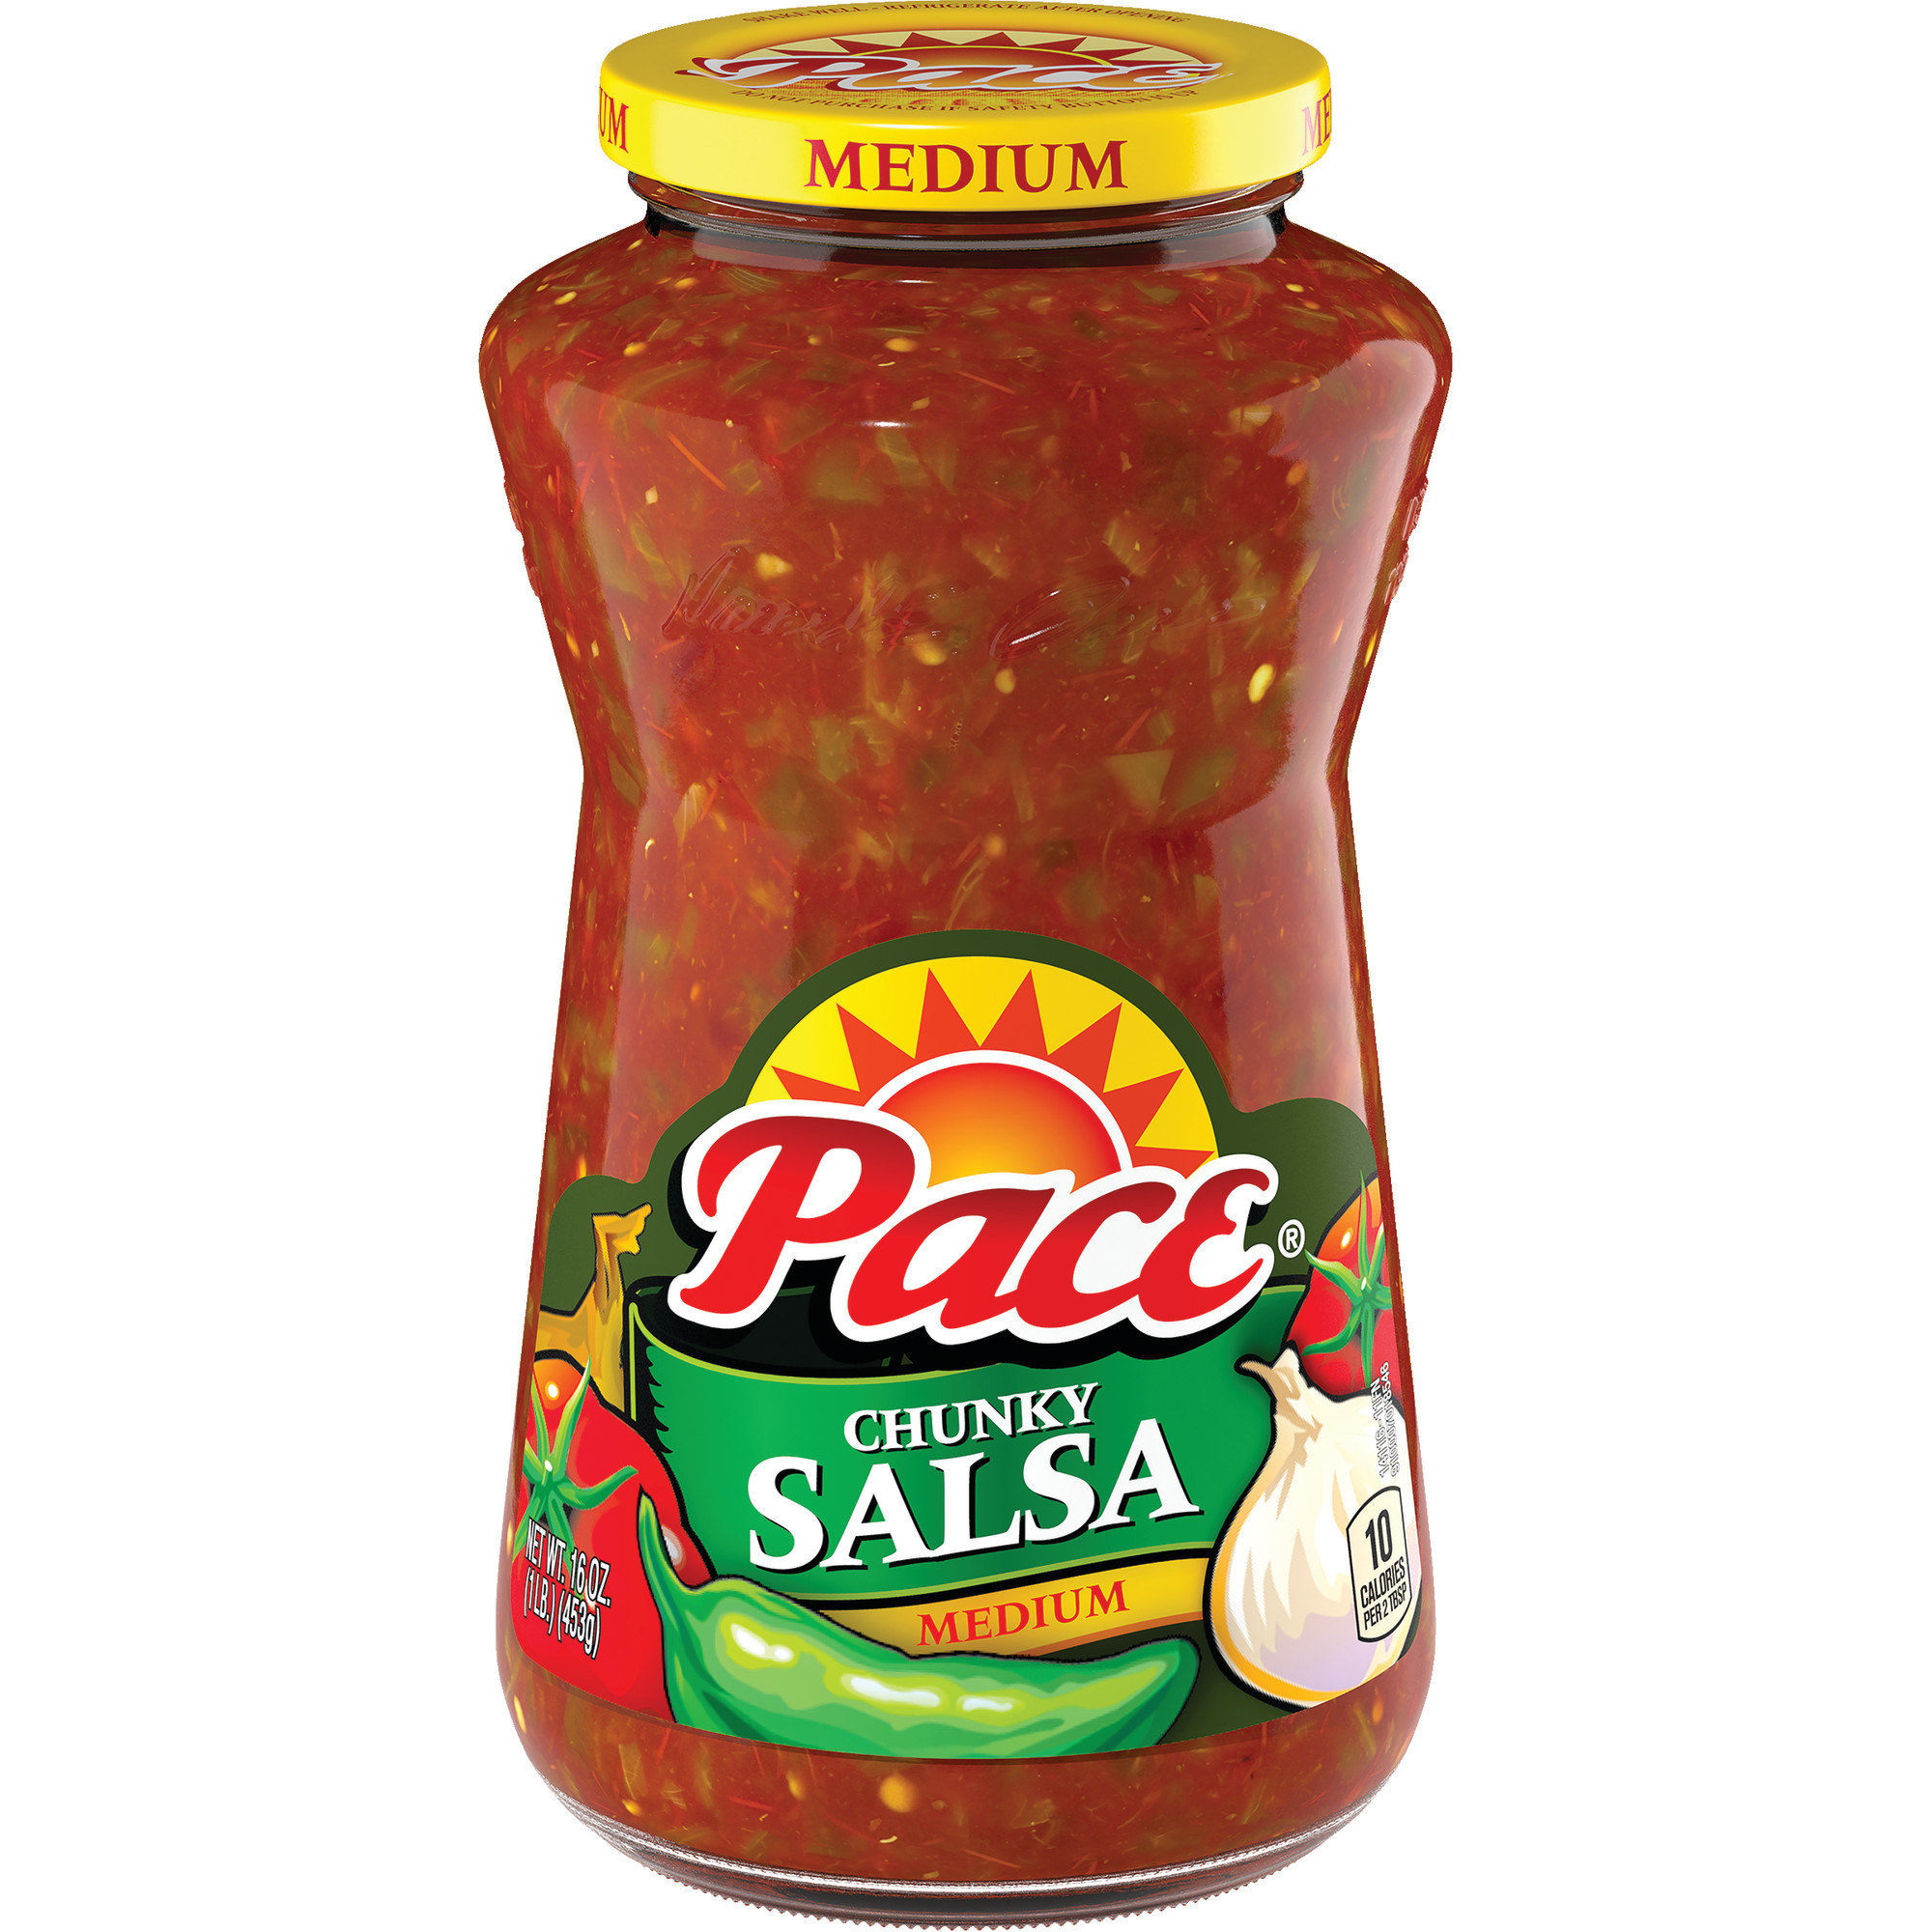 the red jar of salsa